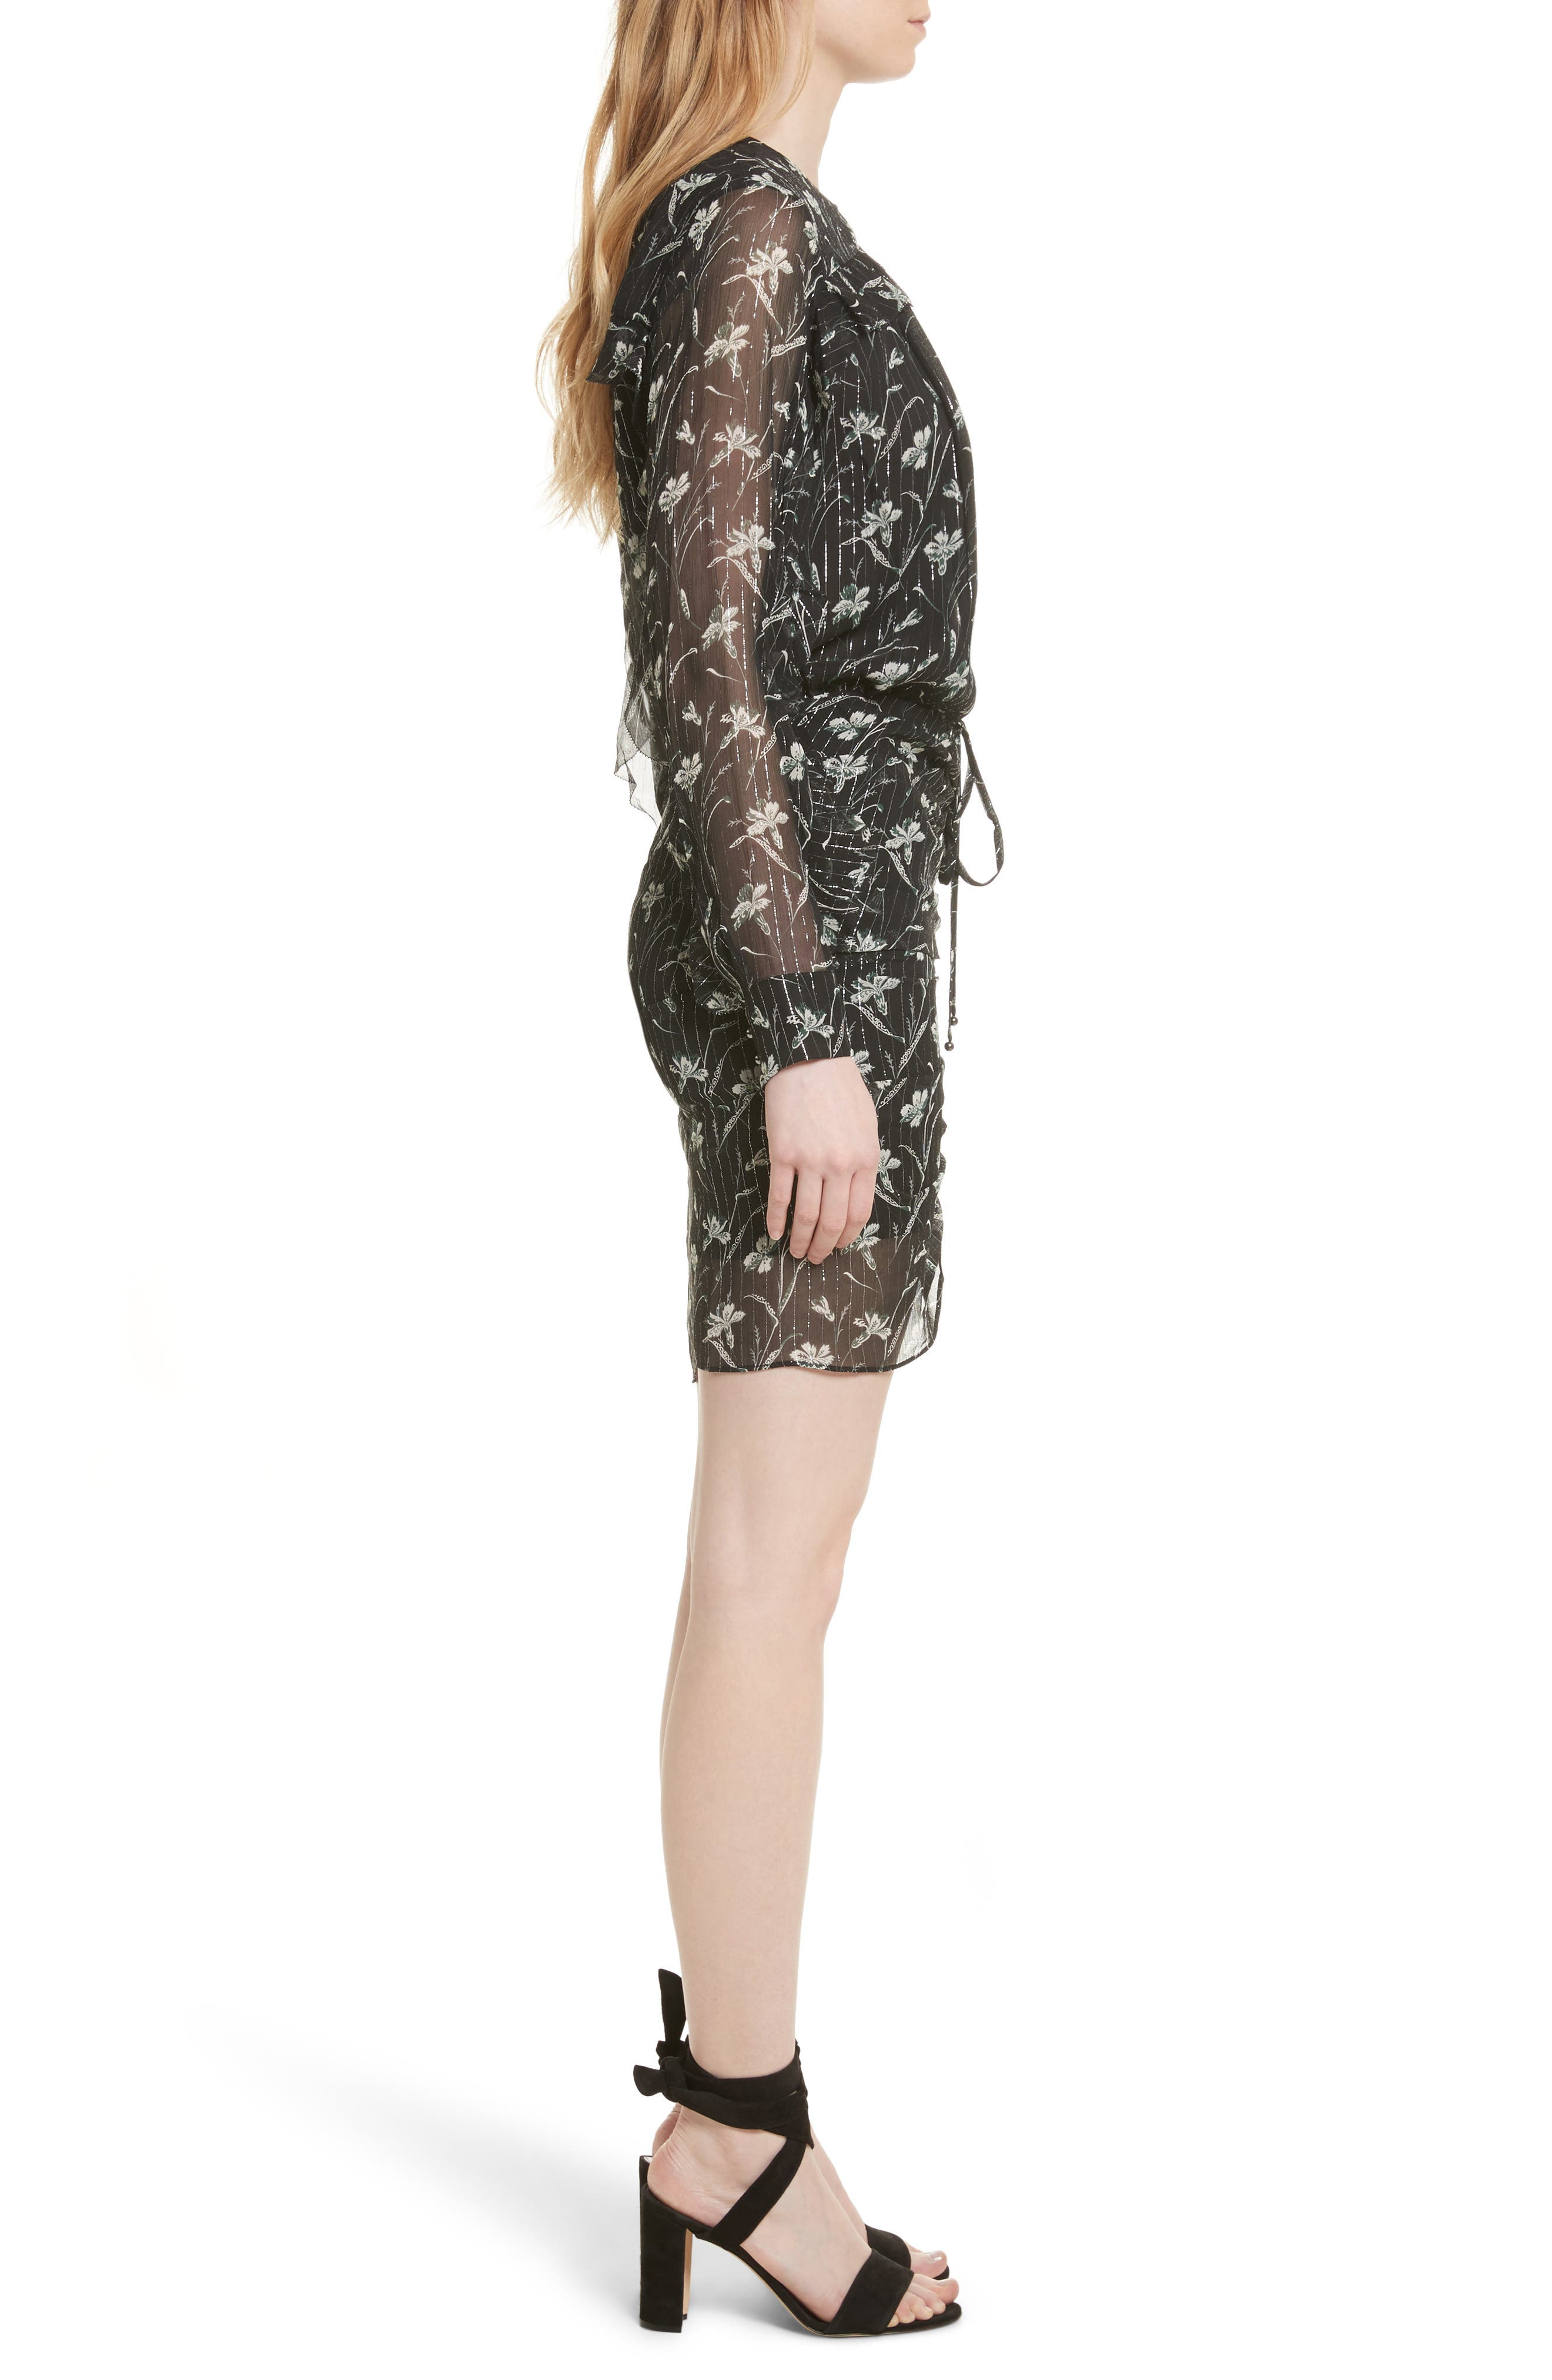 Fitzgerald Floral Print Metallic Chiffon Dress,                             Alternate thumbnail 3, color,                             301